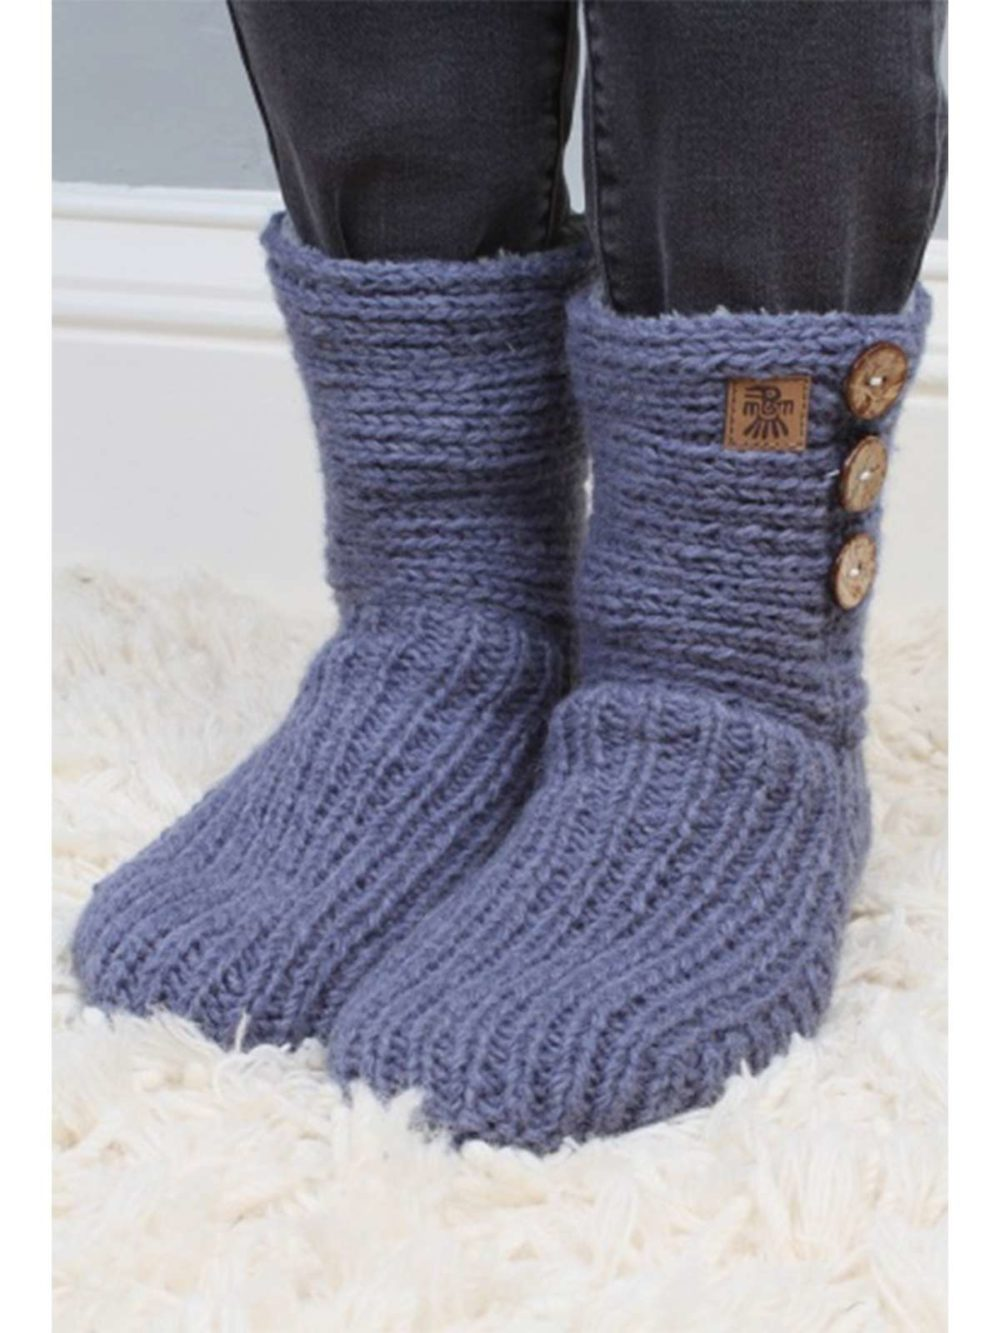 Morzine Slipper Sock Pachamama Katie Kerr Women's Clothing